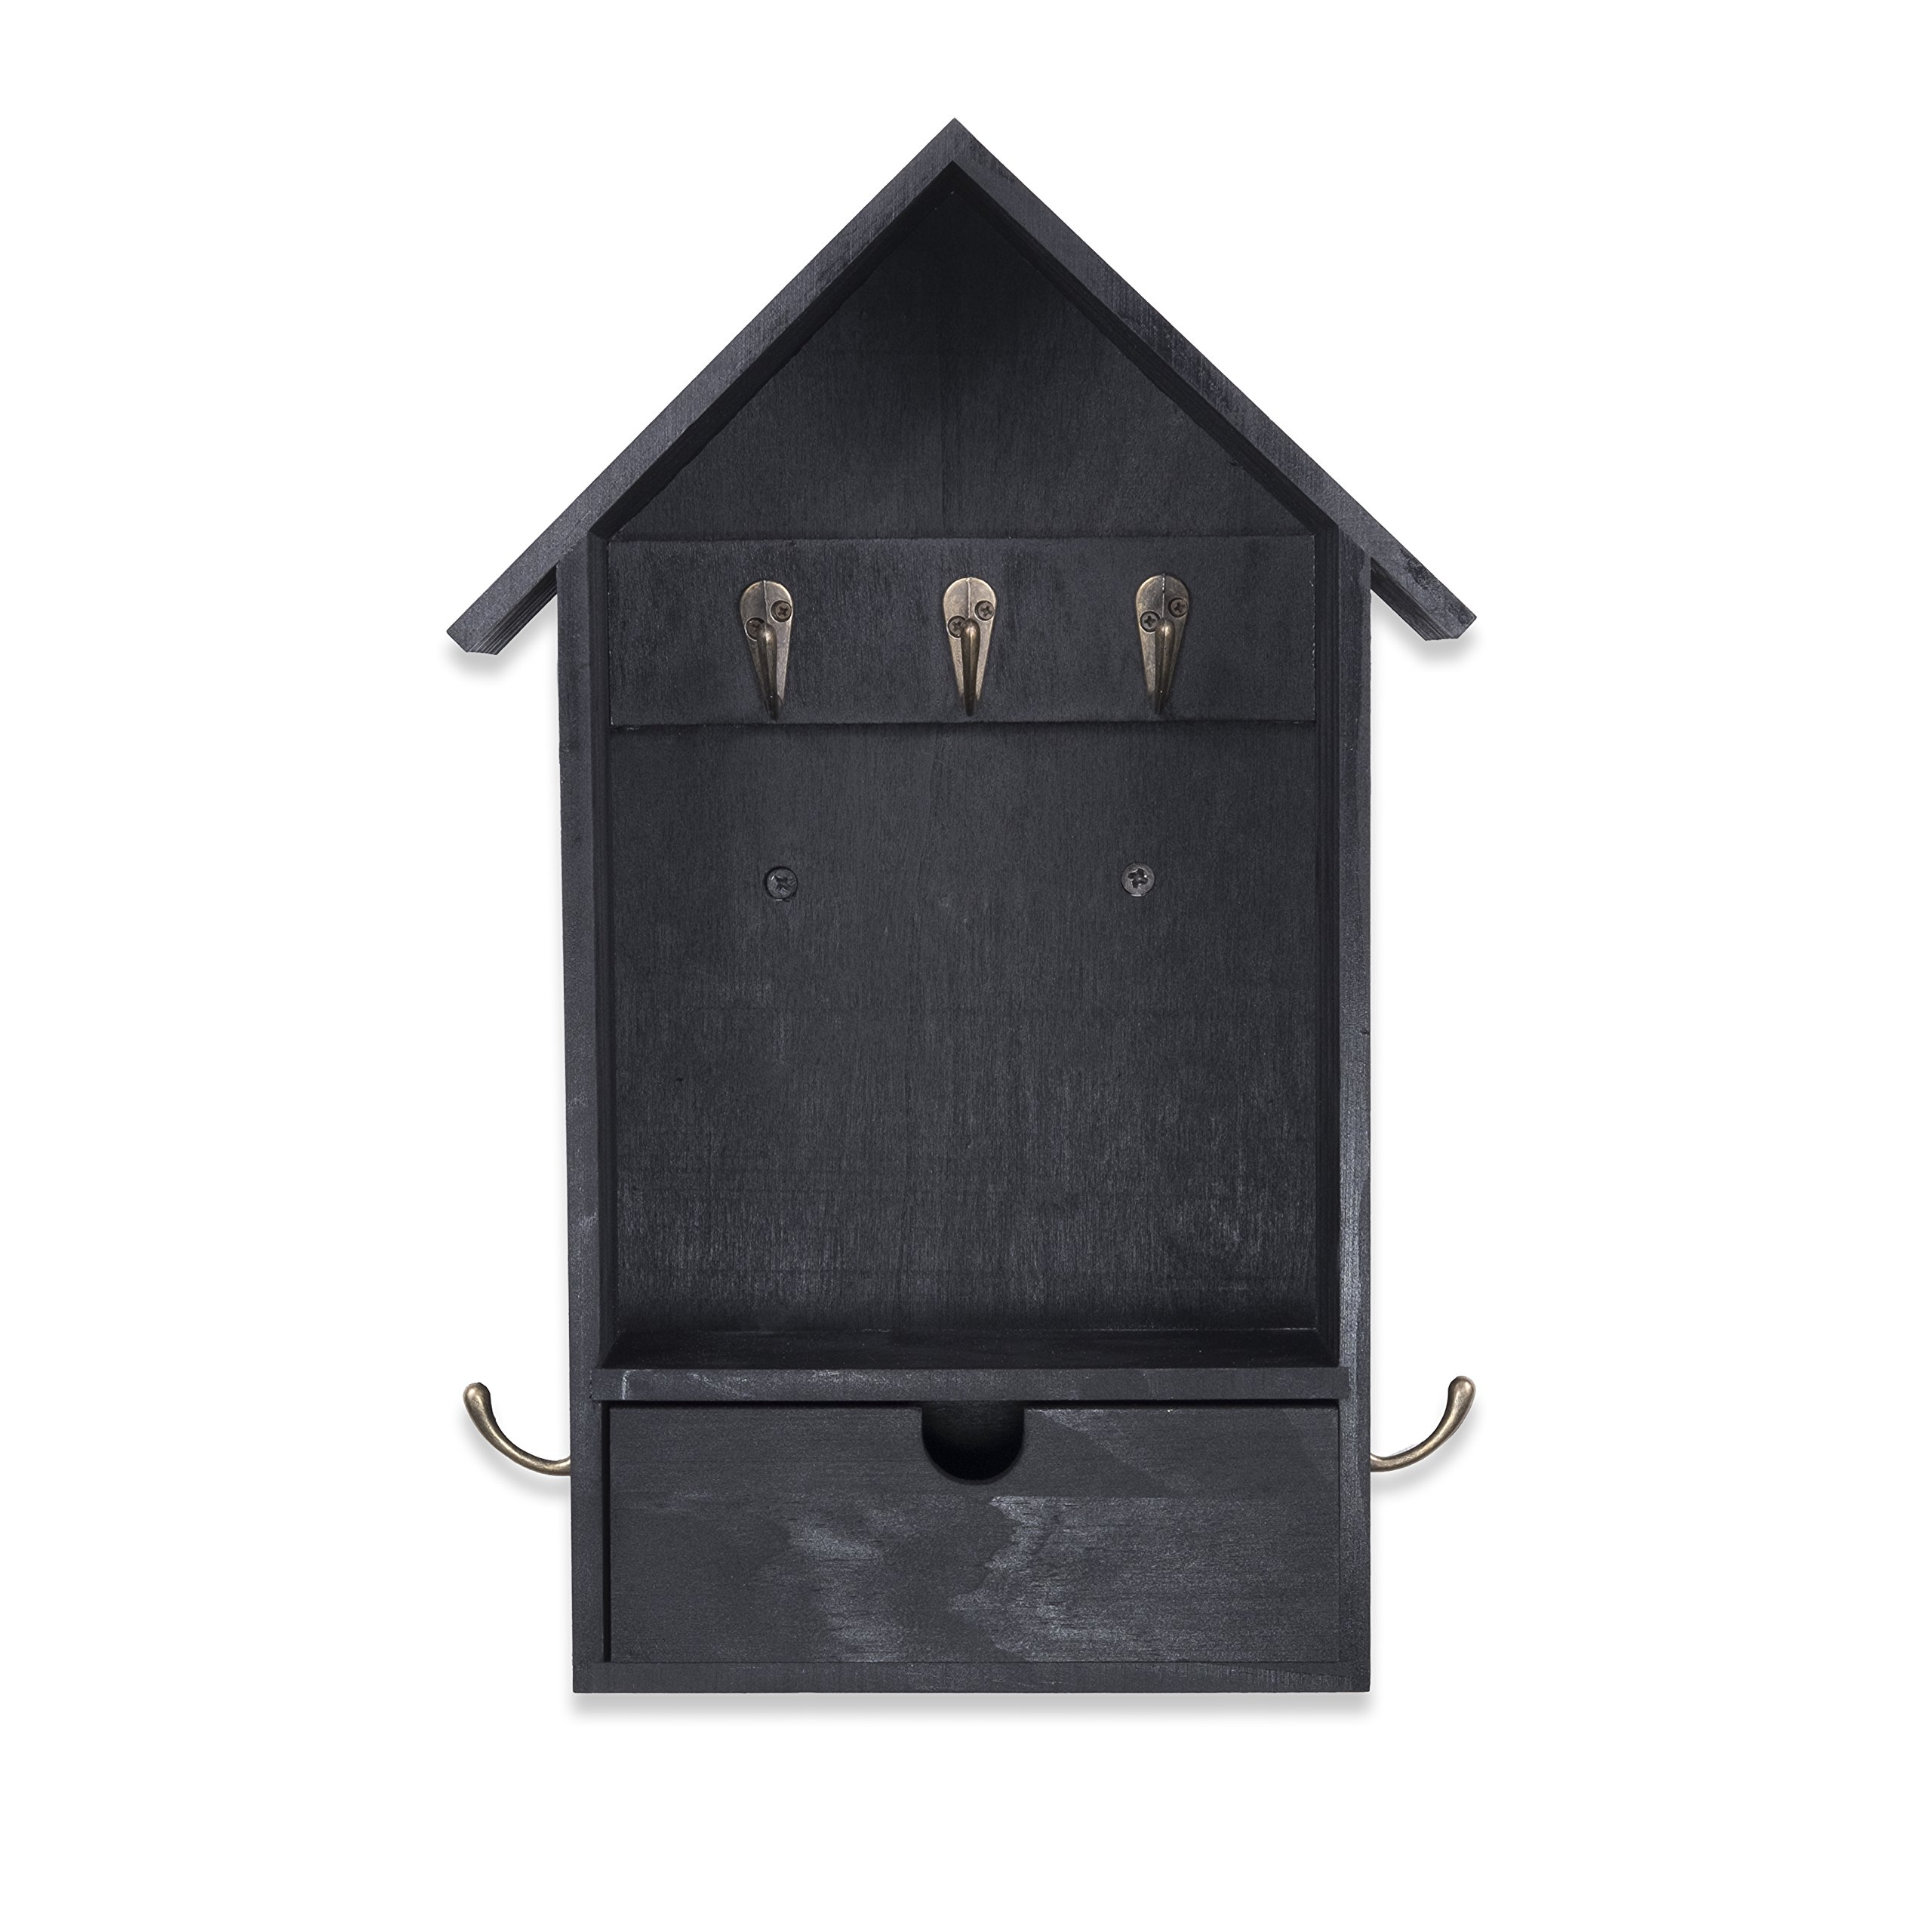 House Shape Unique Design Wall Mount Entryway Organizer Key and Coat Rack (Black) by Brightmaison (Image #3)